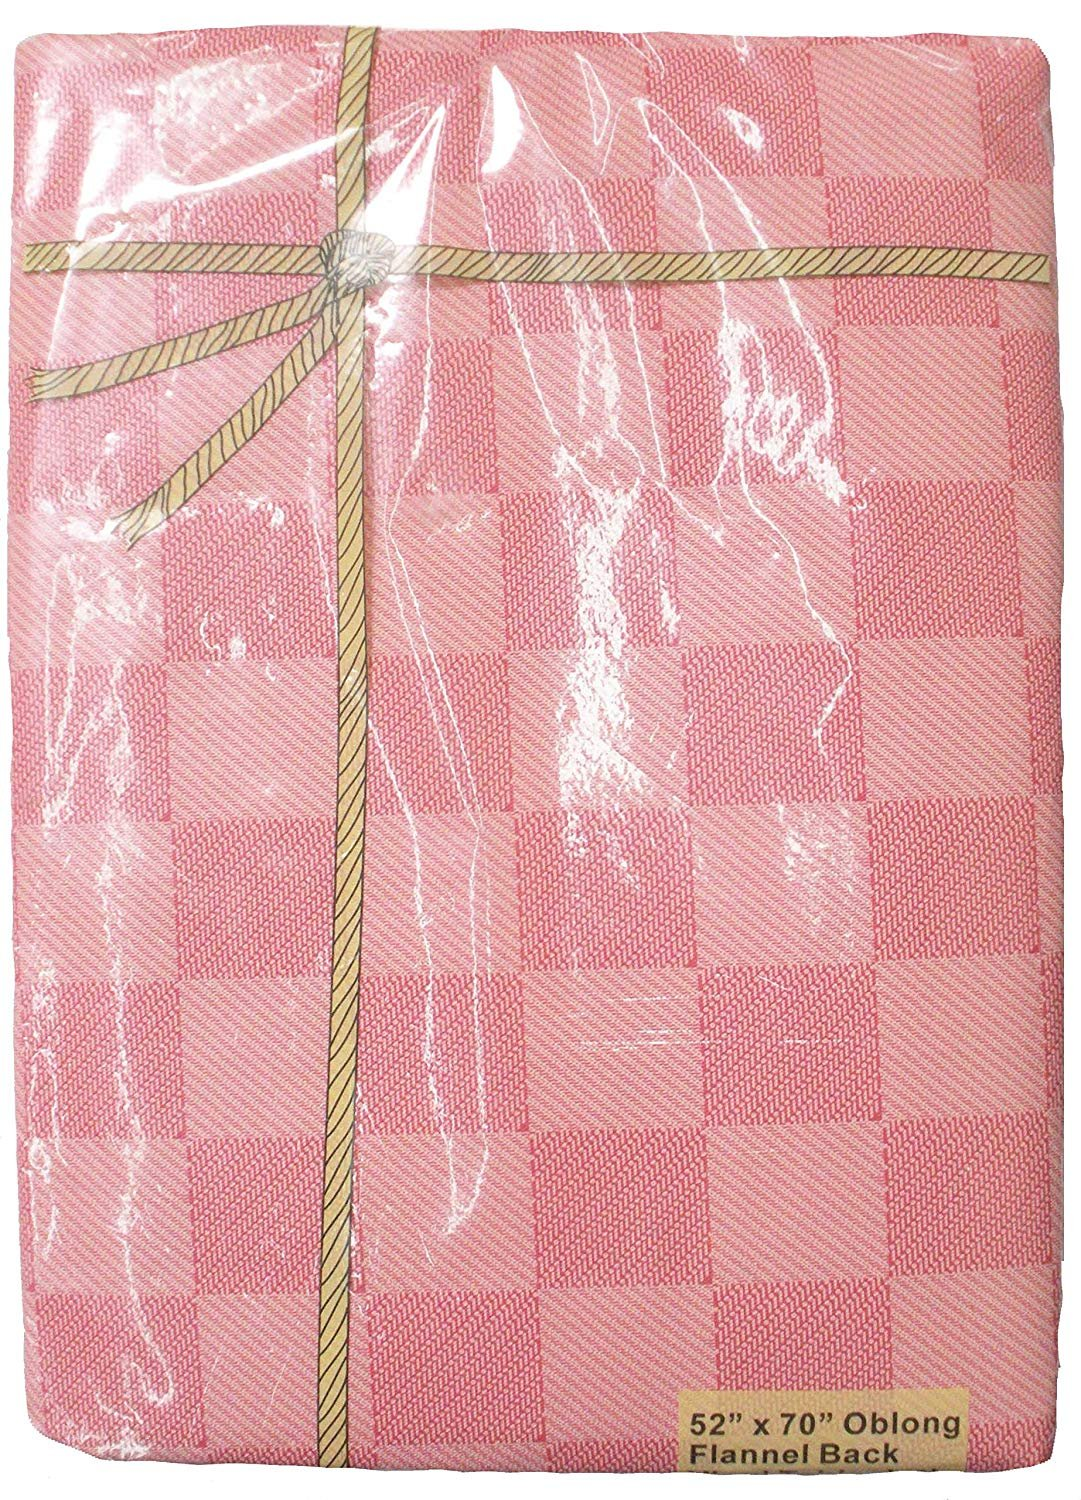 Outdoor Picnics /& Potlucks Party or Everyday Use-Rose Pink 52x70 J/&M Home Fashions 7518A Perfect for Spring Waterproof Spill Proof Check Plaid Vinyl Tablecloth with Flannel back 52x70 Summer Farmhouse D/écor